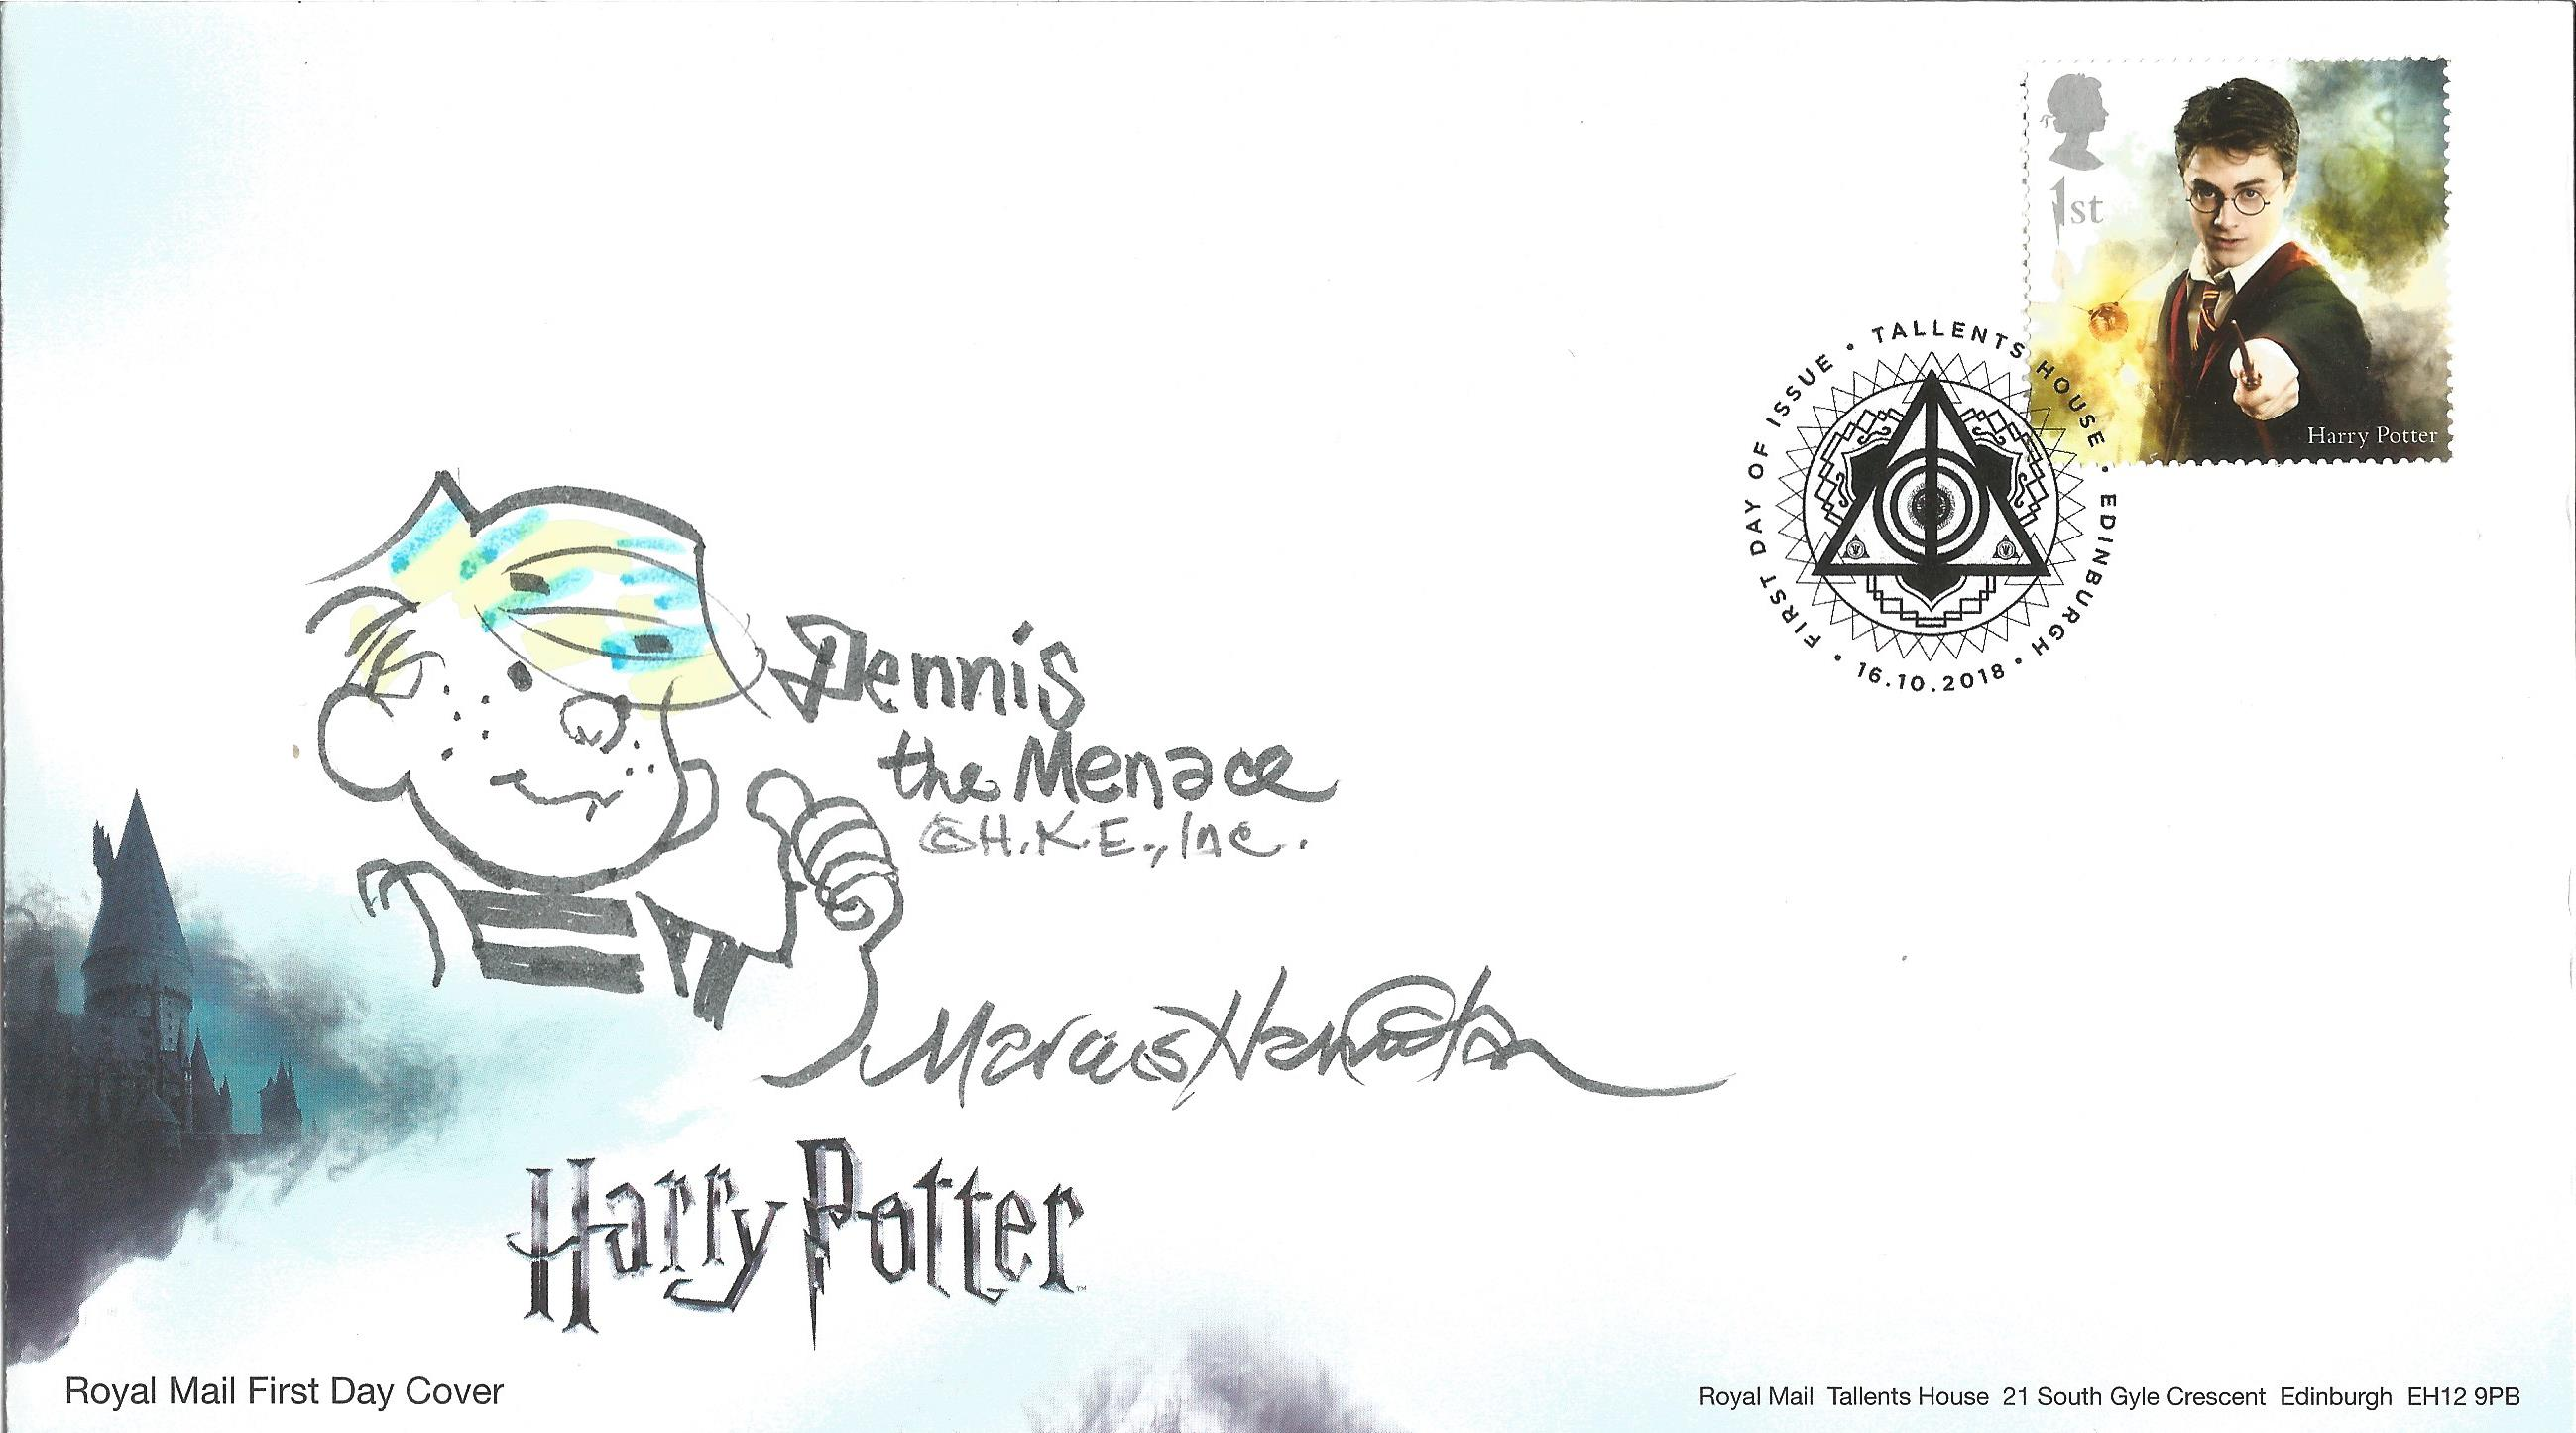 Marcus Hamilton, signed FDC for the Harry Potter film, postmarked 16th Oct 2018, Edinburgh. Good